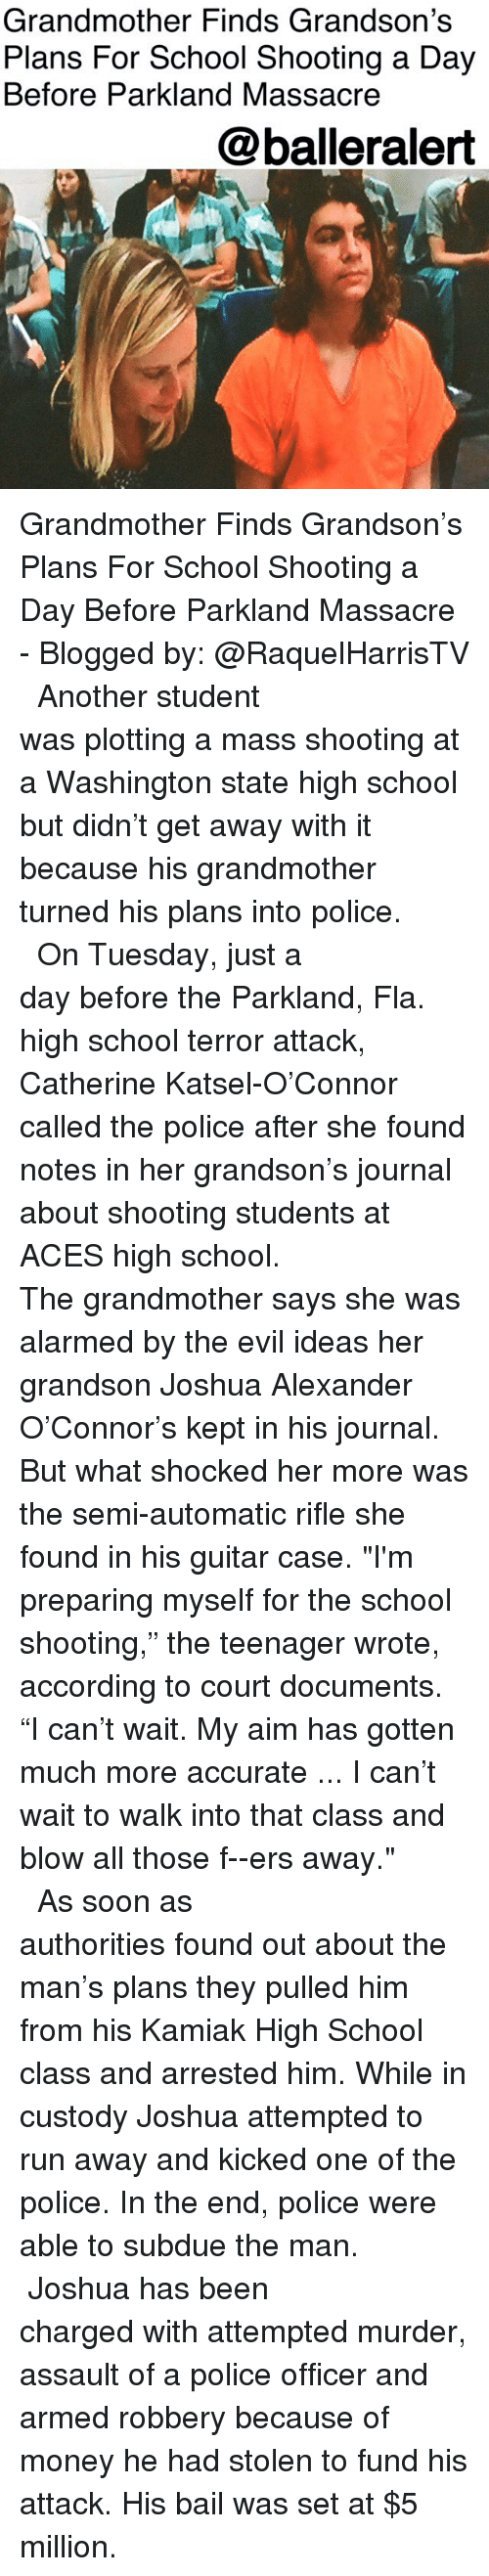 """washington state: Grandmother Finds Grandson's  Plans For School Shooting a Day  Before Parkland Massacre  @balleralert Grandmother Finds Grandson's Plans For School Shooting a Day Before Parkland Massacre - Blogged by: @RaquelHarrisTV ⠀⠀⠀⠀⠀⠀⠀⠀⠀ ⠀⠀⠀⠀⠀⠀⠀⠀⠀ Another student was plotting a mass shooting at a Washington state high school but didn't get away with it because his grandmother turned his plans into police. ⠀⠀⠀⠀⠀⠀⠀⠀⠀ ⠀⠀⠀⠀⠀⠀⠀⠀⠀ On Tuesday, just a day before the Parkland, Fla. high school terror attack, Catherine Katsel-O'Connor called the police after she found notes in her grandson's journal about shooting students at ACES high school. ⠀⠀⠀⠀⠀⠀⠀⠀⠀ ⠀⠀⠀⠀⠀⠀⠀⠀⠀ The grandmother says she was alarmed by the evil ideas her grandson Joshua Alexander O'Connor's kept in his journal. But what shocked her more was the semi-automatic rifle she found in his guitar case. """"I'm preparing myself for the school shooting,"""" the teenager wrote, according to court documents. """"I can't wait. My aim has gotten much more accurate ... I can't wait to walk into that class and blow all those f--ers away."""" ⠀⠀⠀⠀⠀⠀⠀⠀⠀ ⠀⠀⠀⠀⠀⠀⠀⠀⠀ As soon as authorities found out about the man's plans they pulled him from his Kamiak High School class and arrested him. While in custody Joshua attempted to run away and kicked one of the police. In the end, police were able to subdue the man. ⠀⠀⠀⠀⠀⠀⠀⠀⠀ ⠀⠀⠀⠀⠀⠀⠀⠀⠀ Joshua has been charged with attempted murder, assault of a police officer and armed robbery because of money he had stolen to fund his attack. His bail was set at $5 million."""